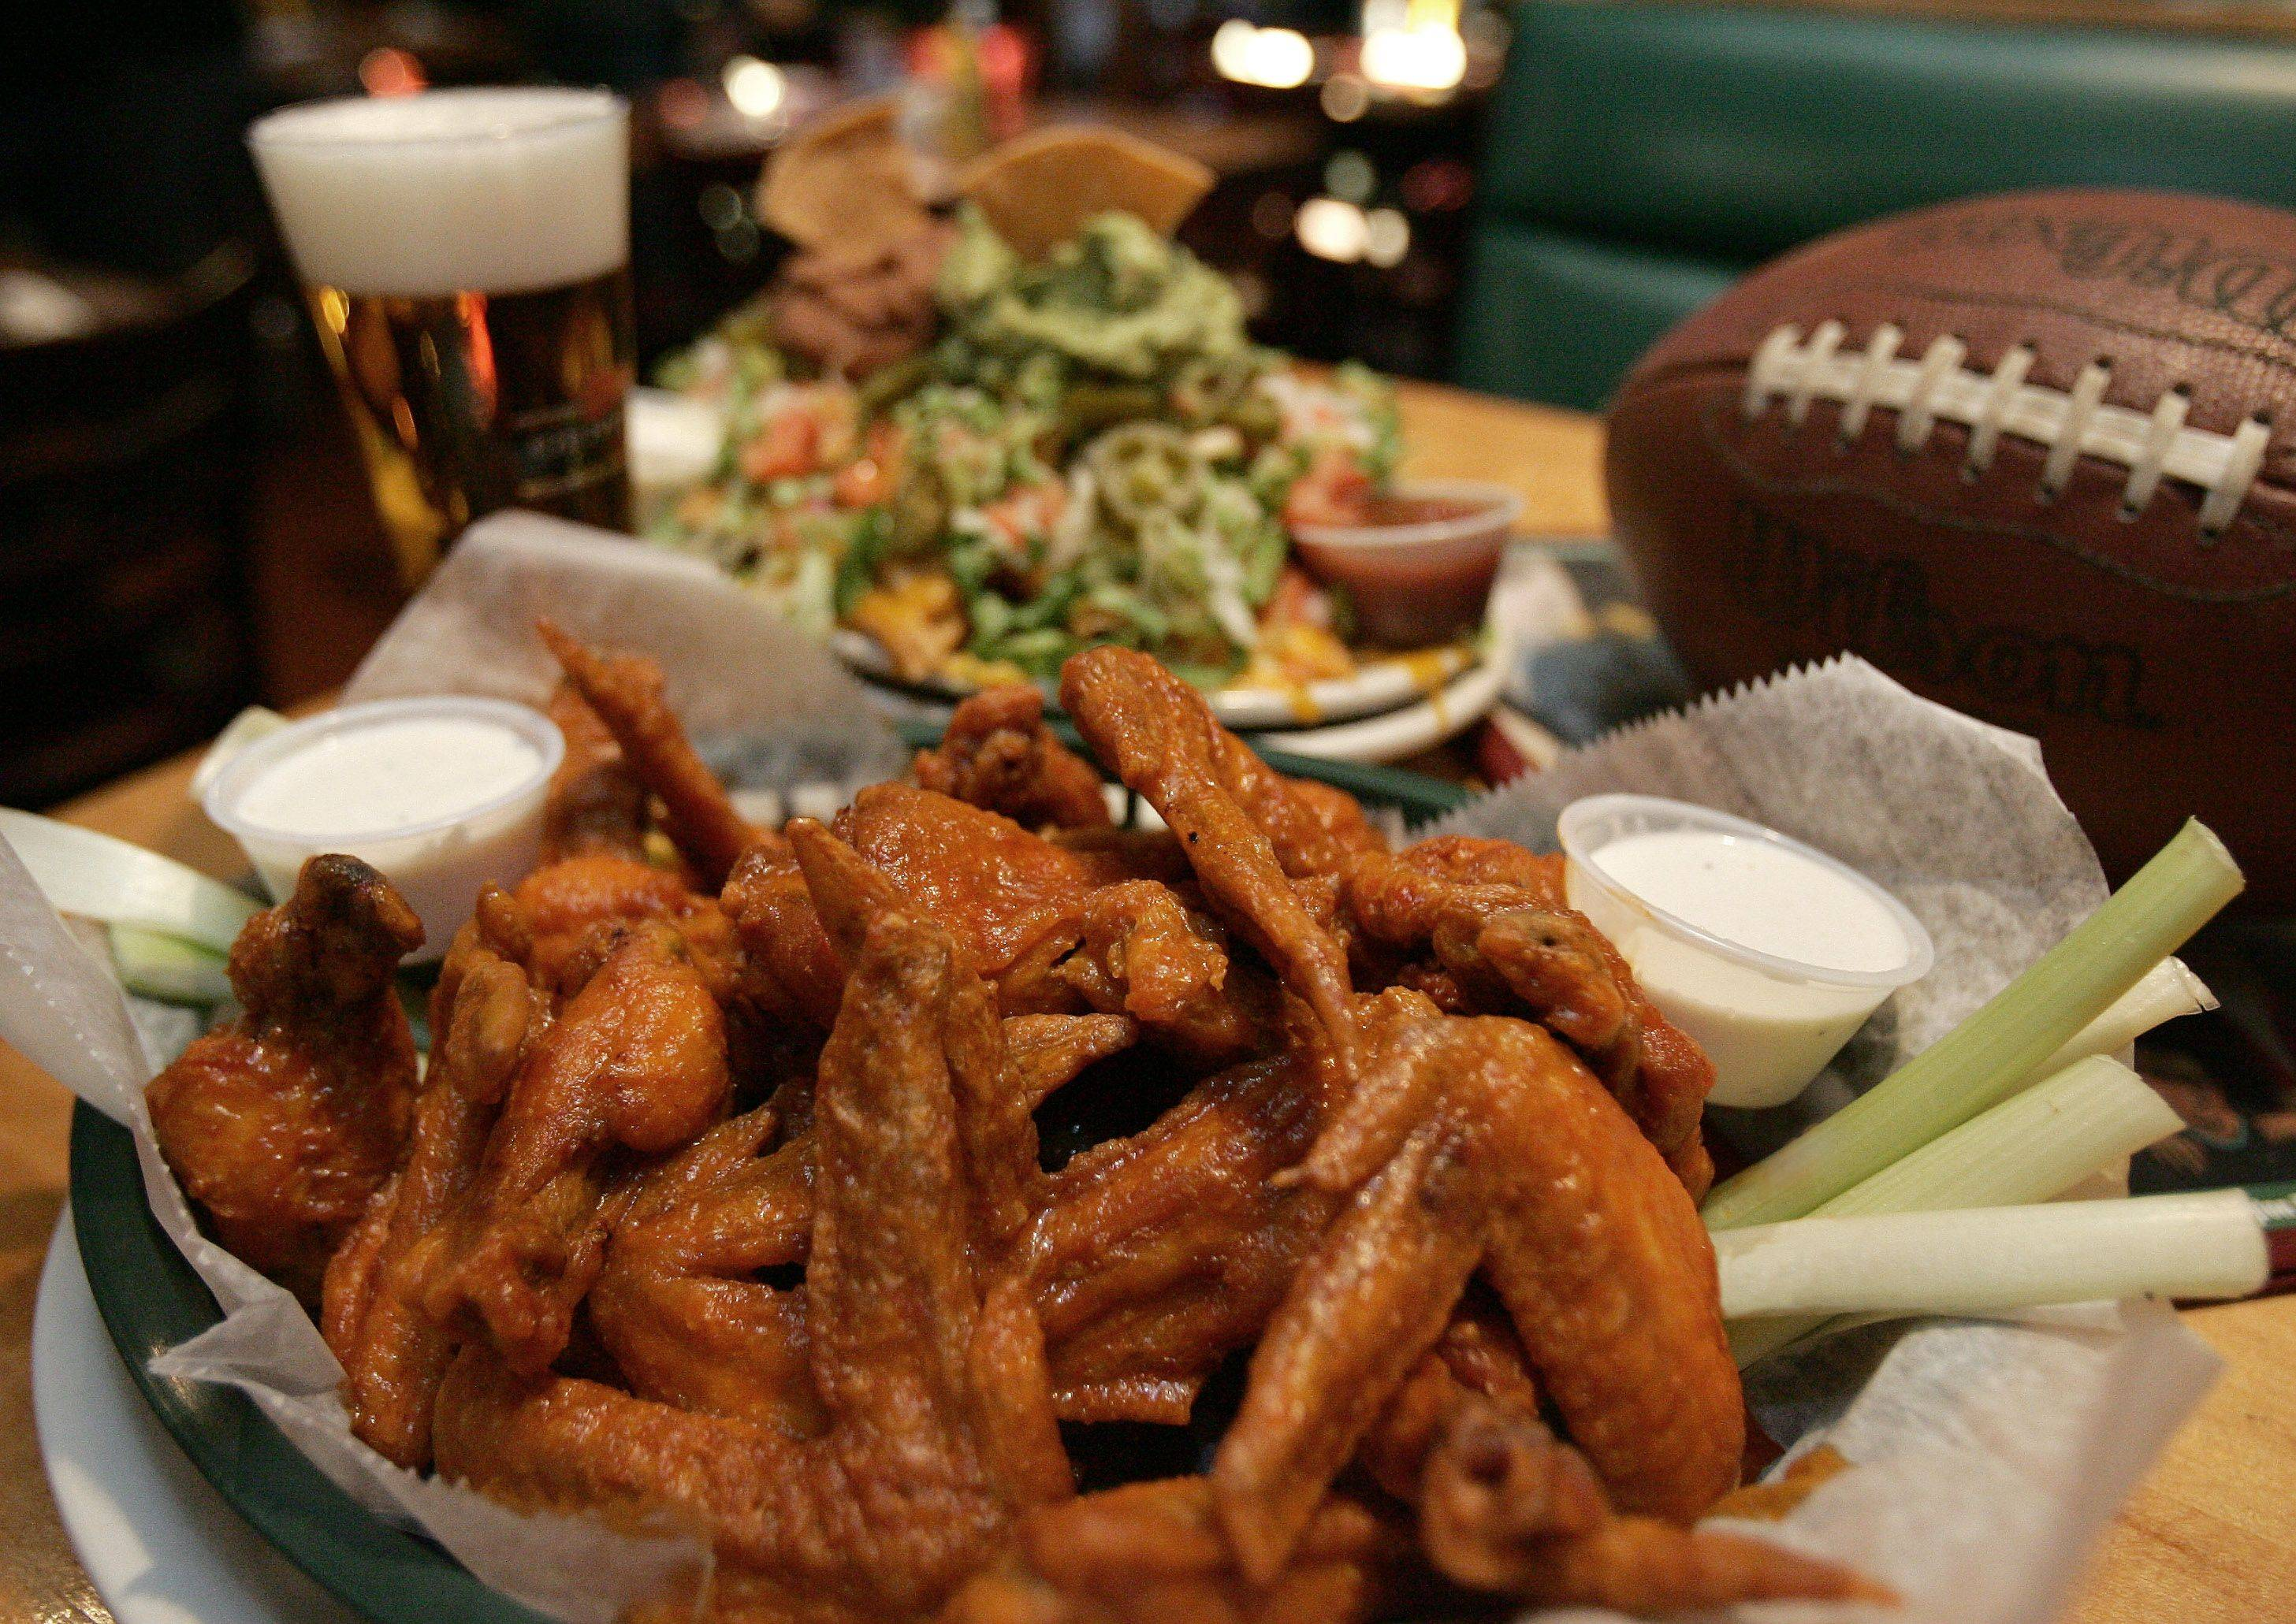 Chicken wings are among the free buffet offerings at the Sports Page in Arlington Heights.